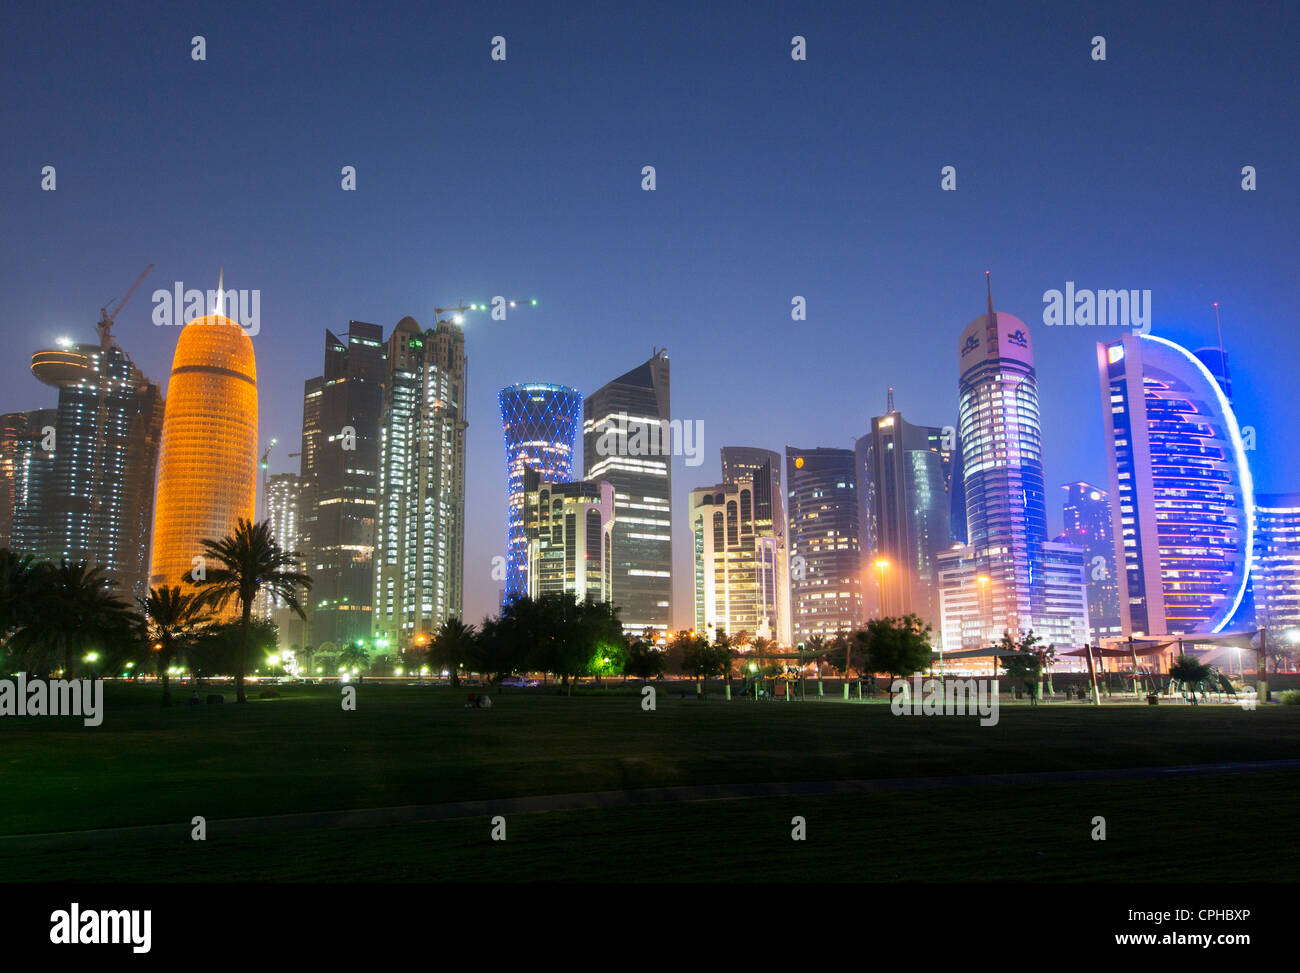 Evening view of modern skyscrapers  at night on The Corniche  in new business district of Doha in Qatar - Stock Image